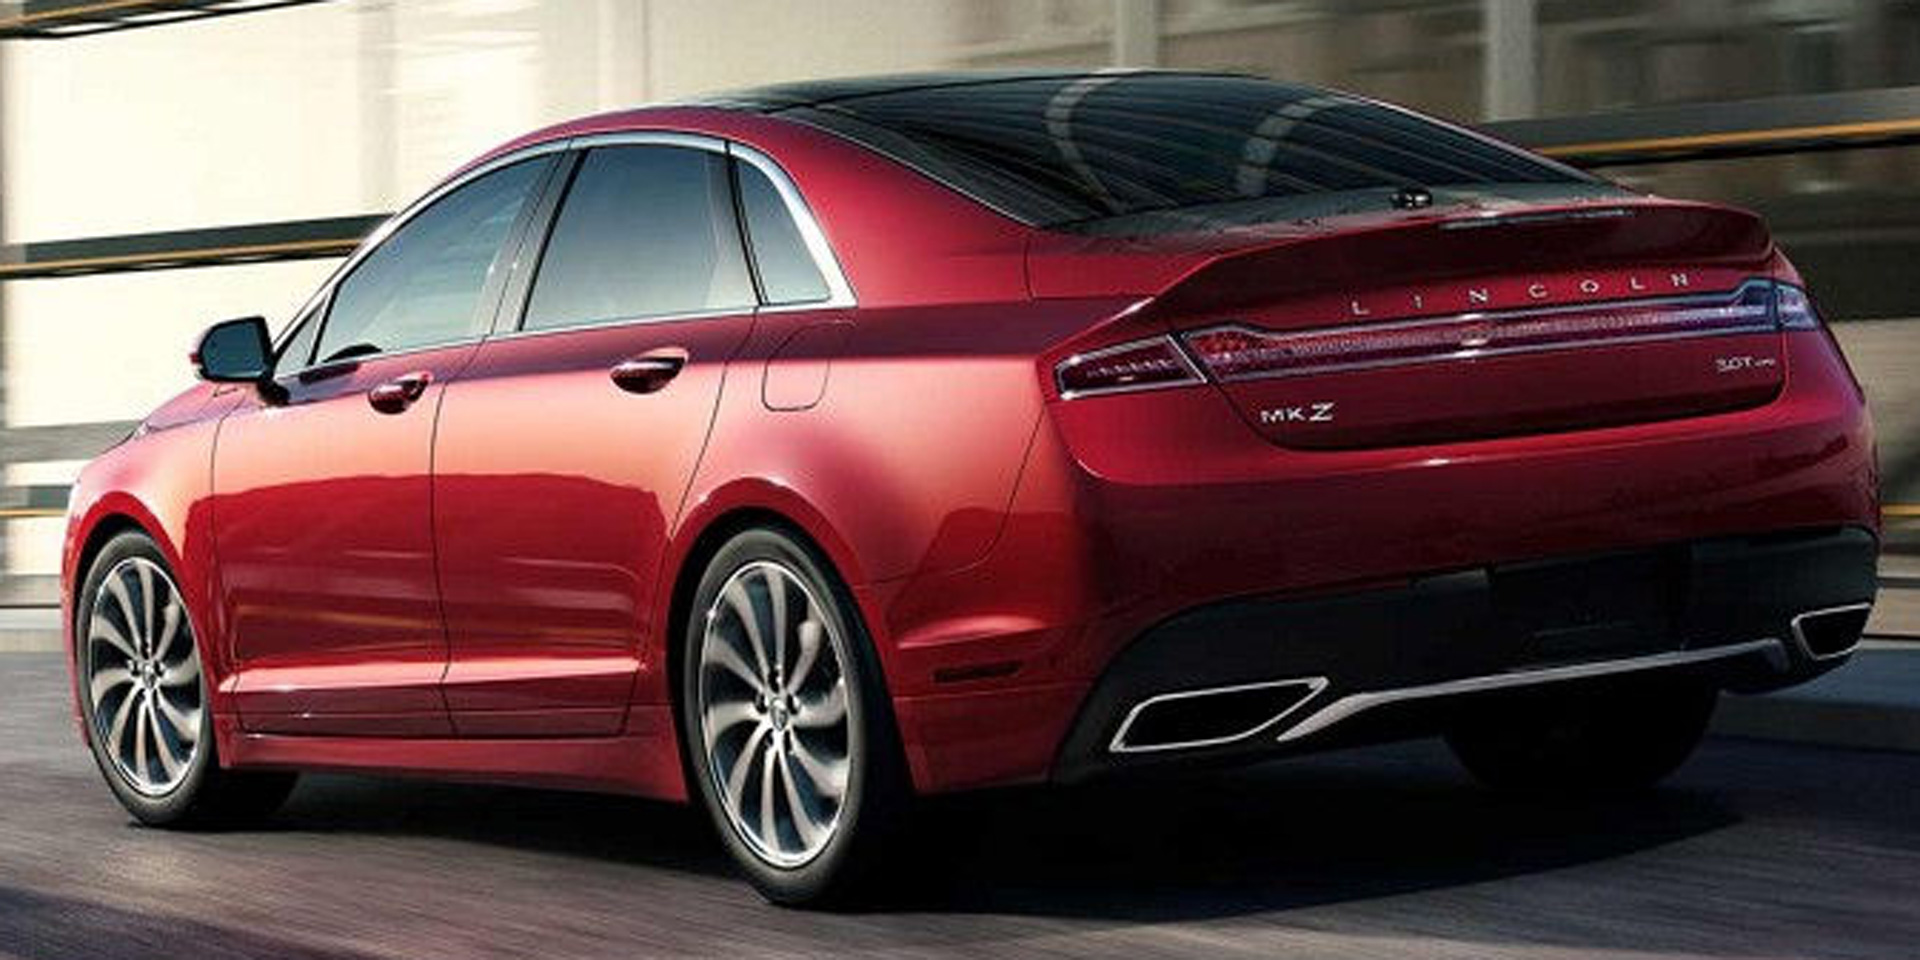 2018 - Lincoln - MKZ - Vehicles on Display | Chicago Auto Show